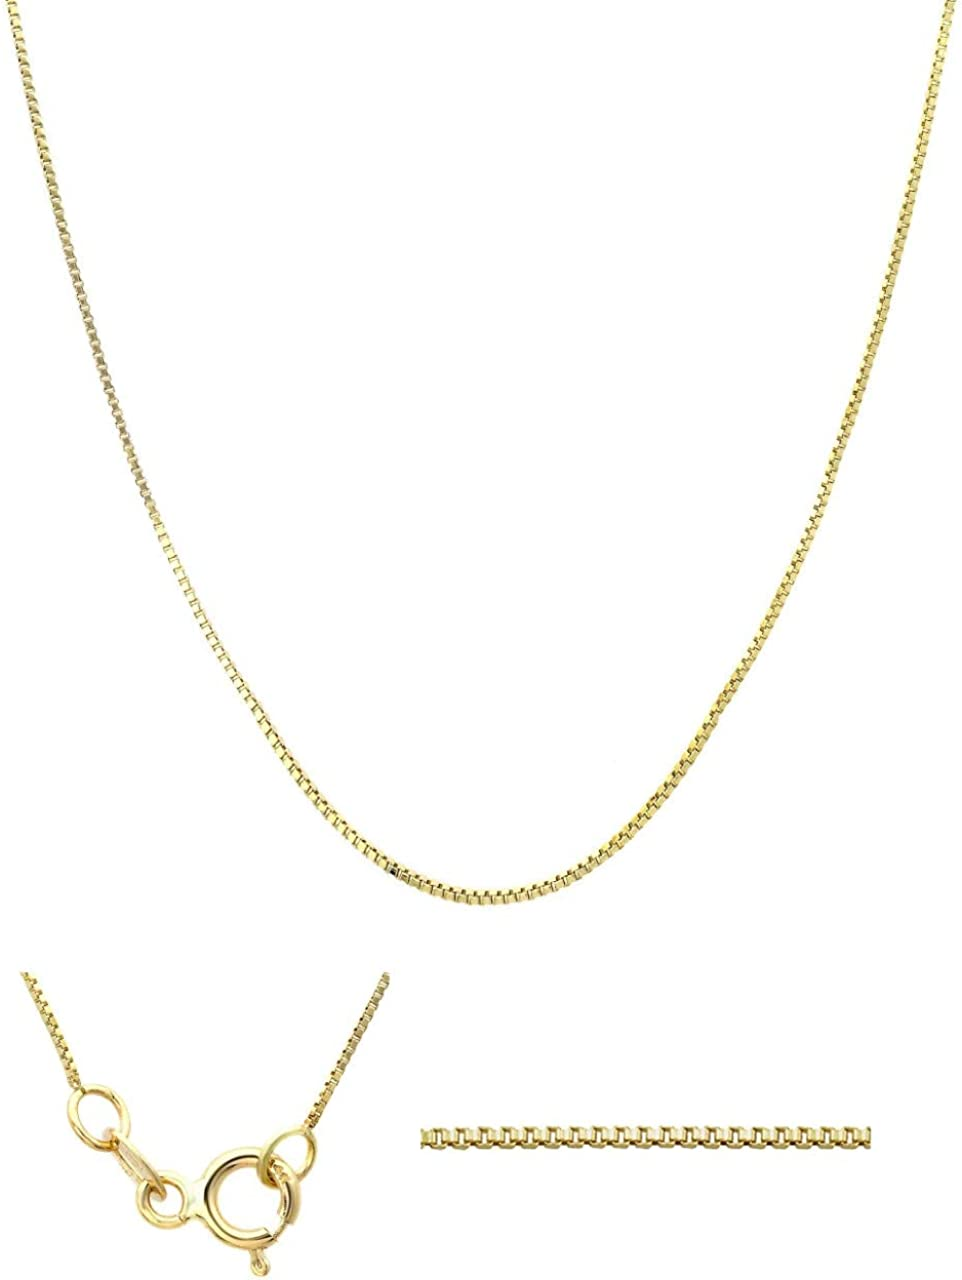 Olivia New Free shipping on posting reviews York 14k Solid Box Necklace Sale price Spring-Clasp Gold Chain